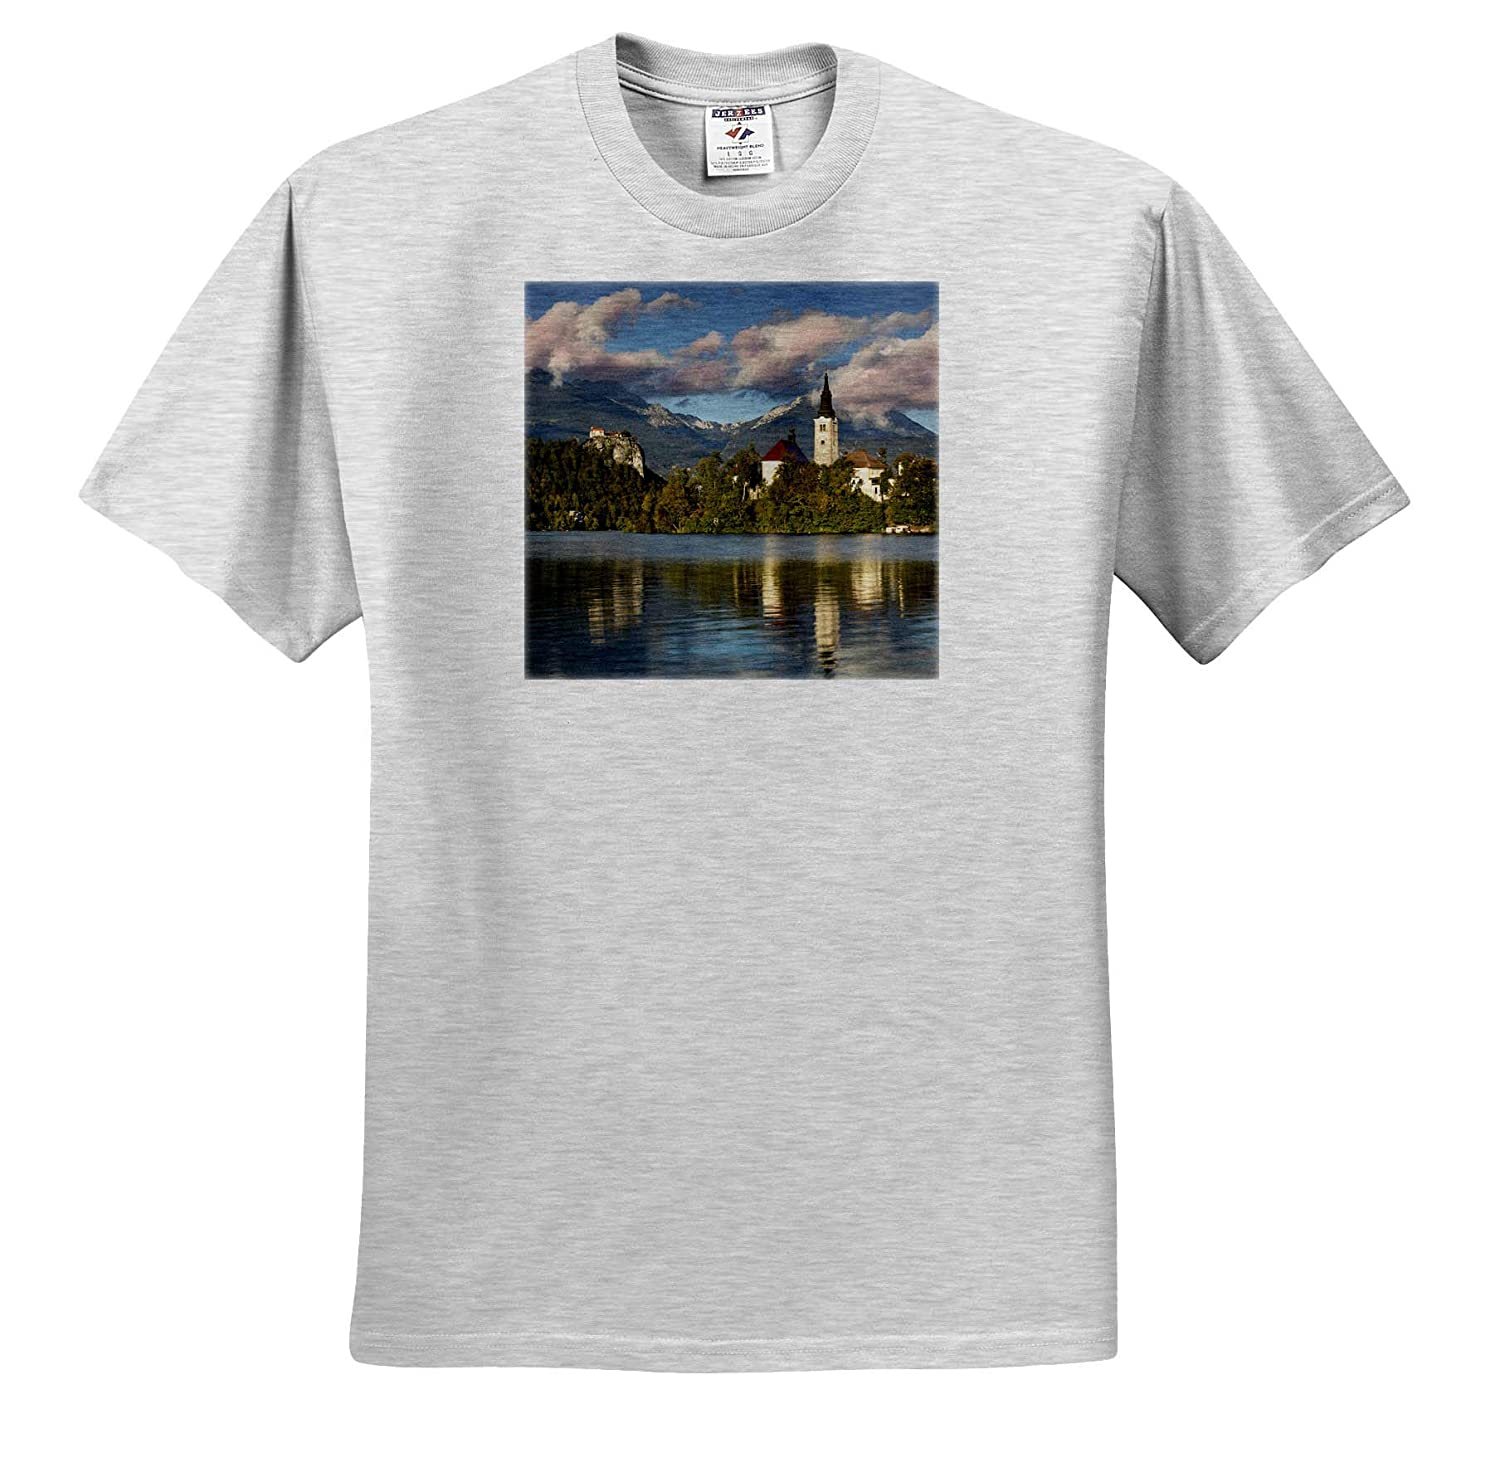 St ts/_313882 Slovenia Adult T-Shirt XL Slovenia Marys Church on Bled Island with Bled Castle 3dRose Danita Delimont